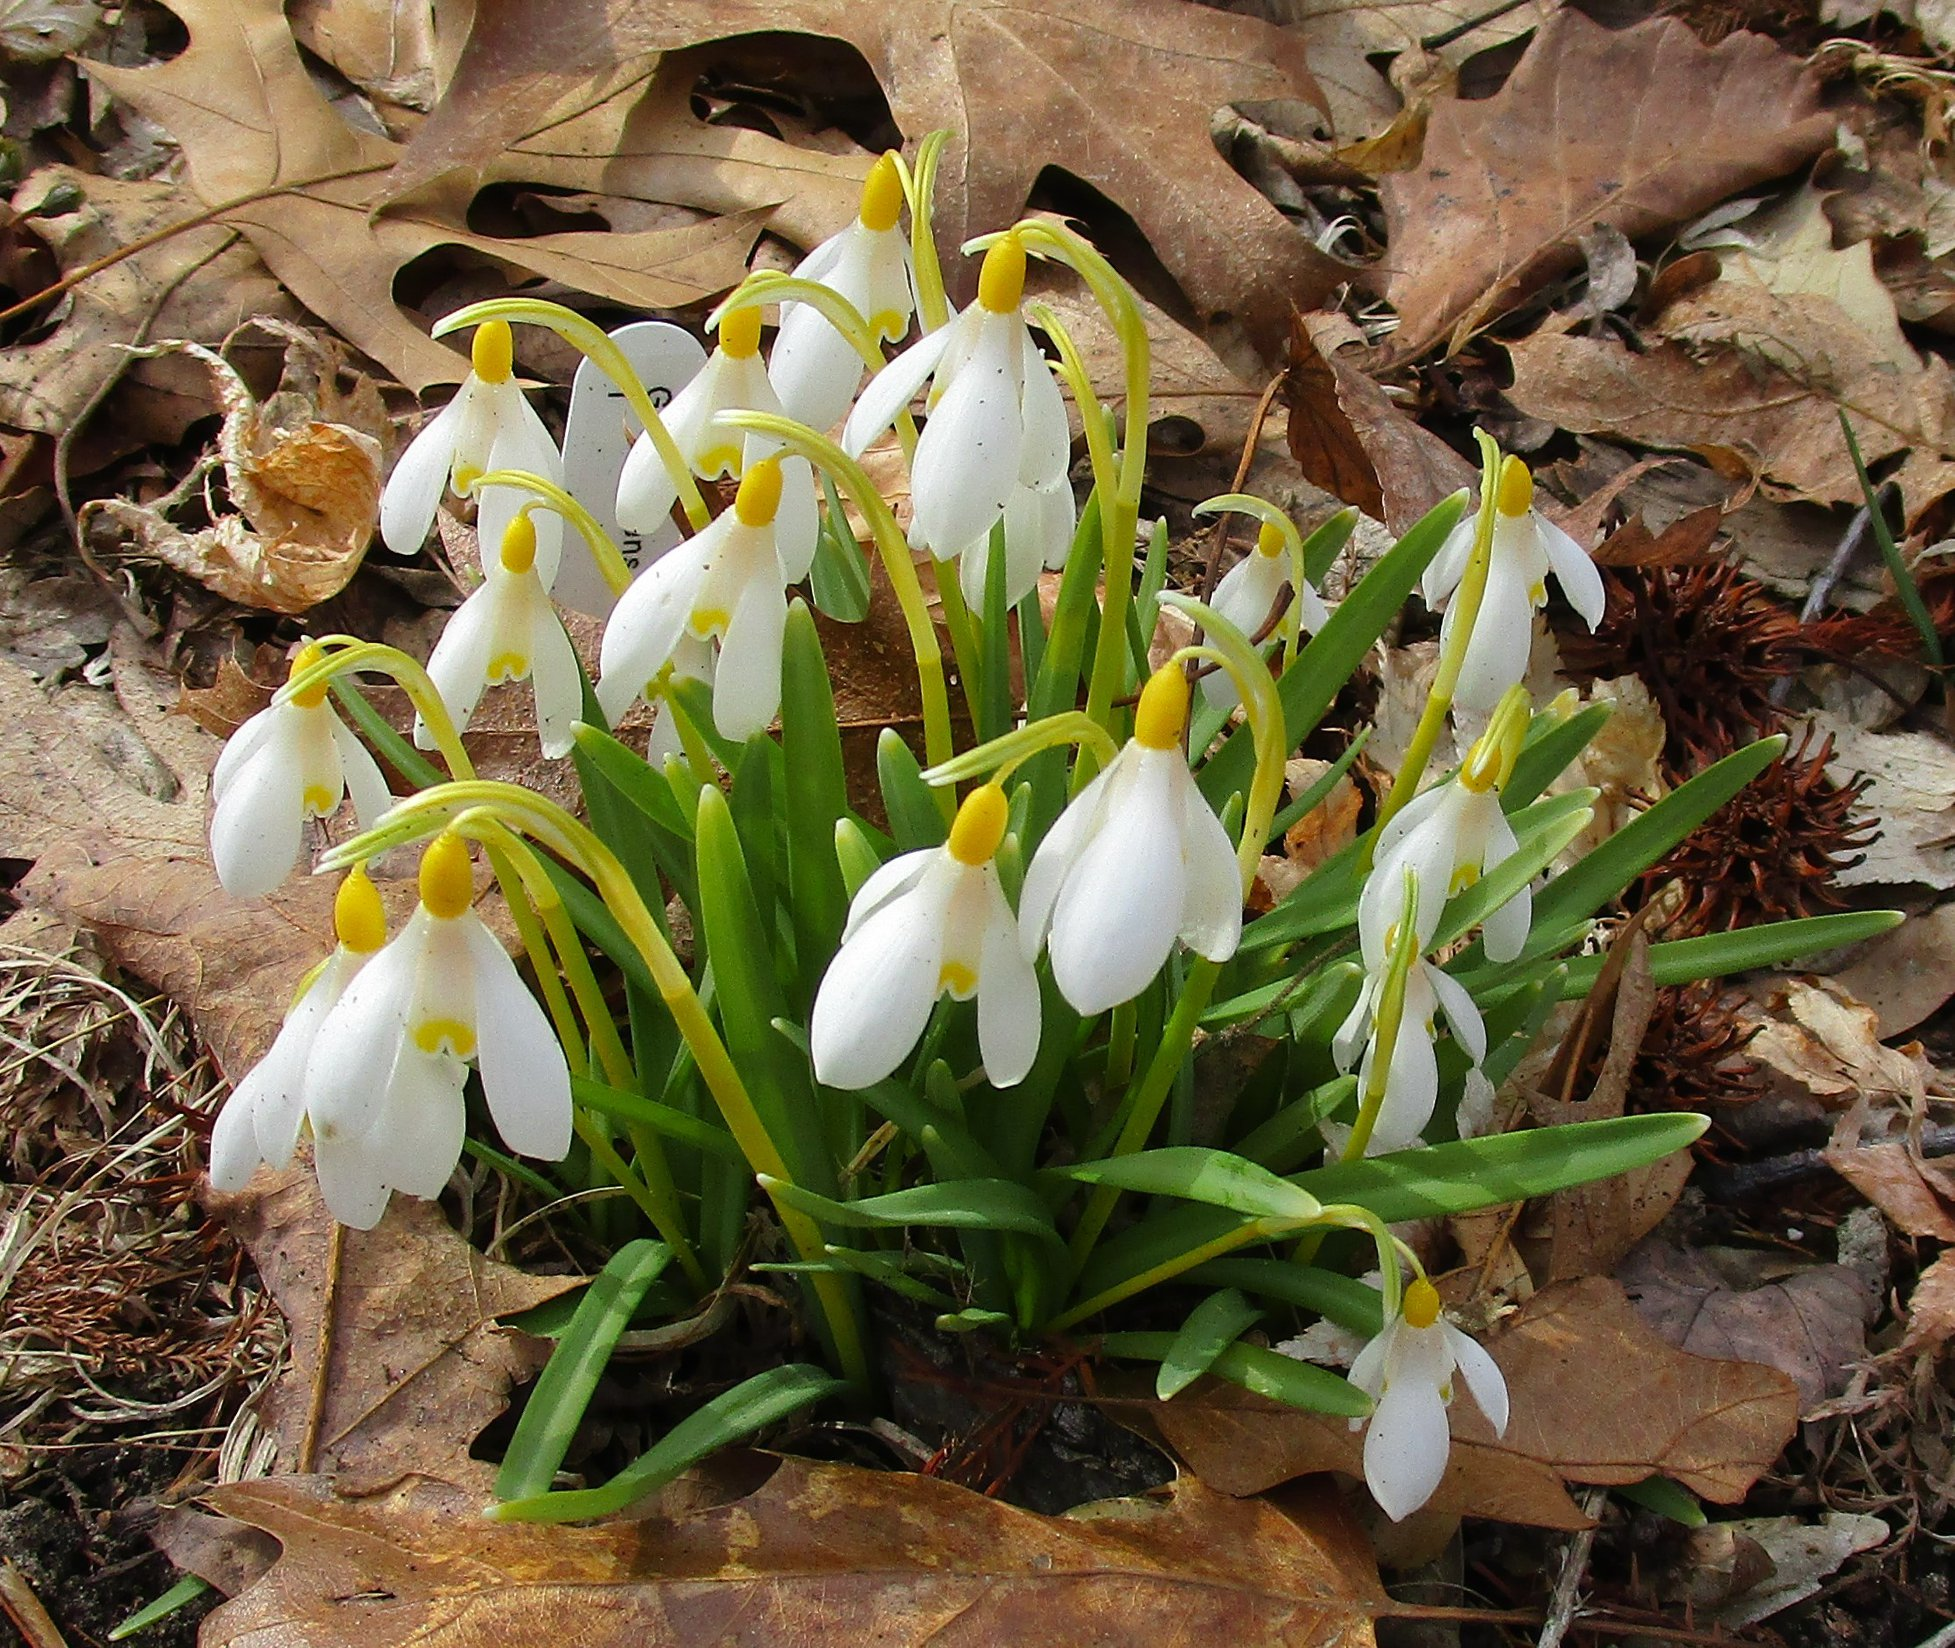 Rare spring flowers from a plant collector galanthus nivalis lutesecens is one of the selections of snowdrops that changes out the usual pattern of green on the petals and flowering stem for a izmirmasajfo